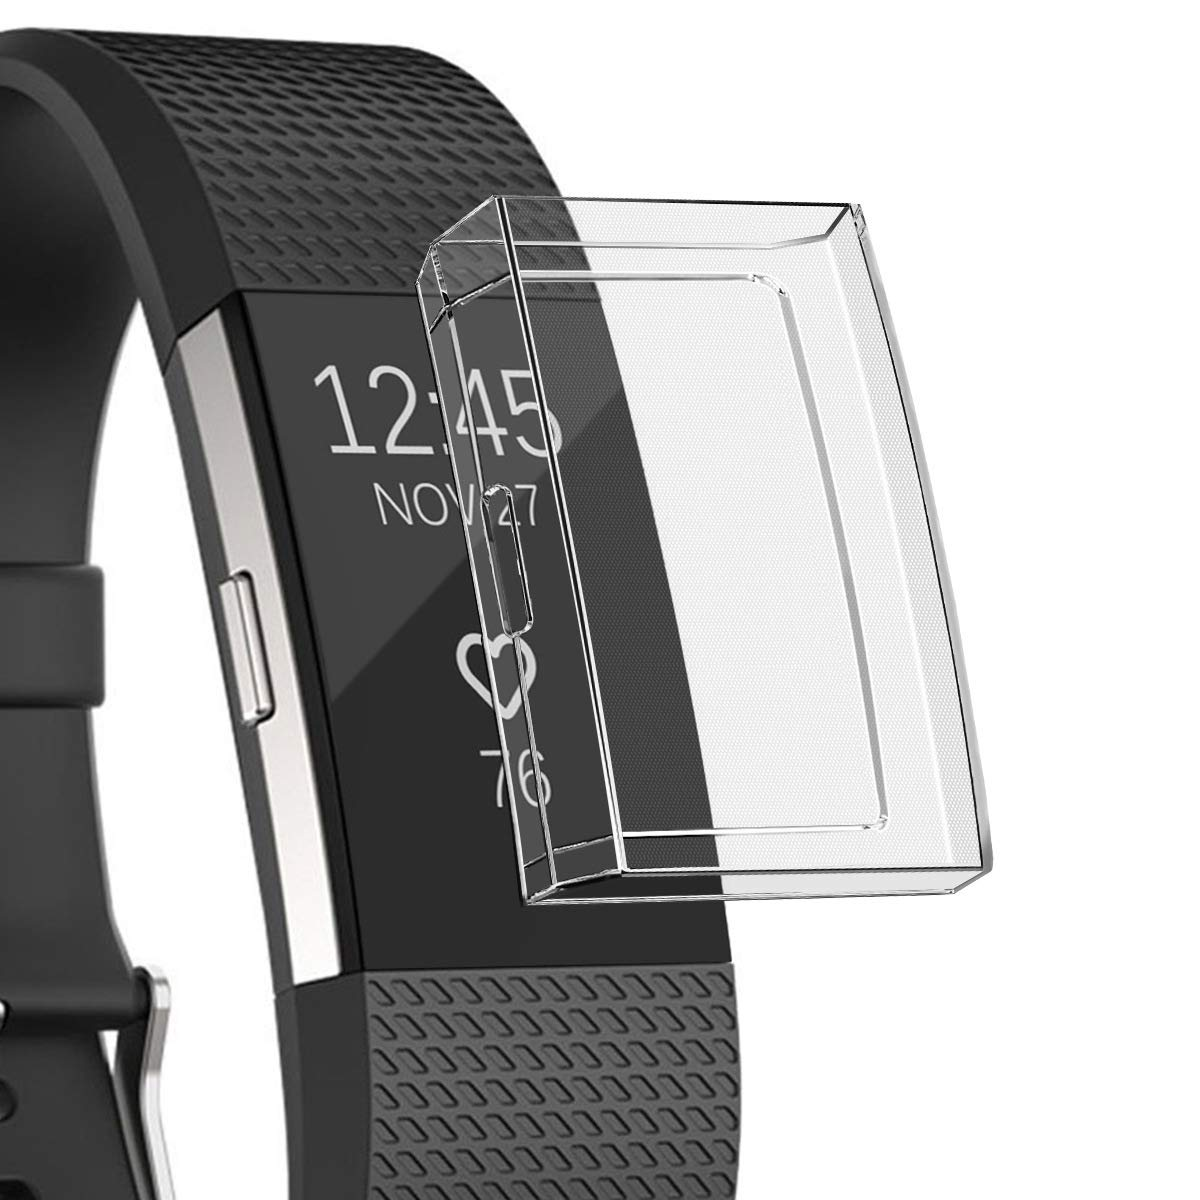 Screen Protector for Fitbit Charge 2 Case, Ultra Slim Soft Full Cover TPU Protective Casing Scratch Proof Transparent Frame Shell Accessories for Fitbit Charge 2 Watch (Transparent)